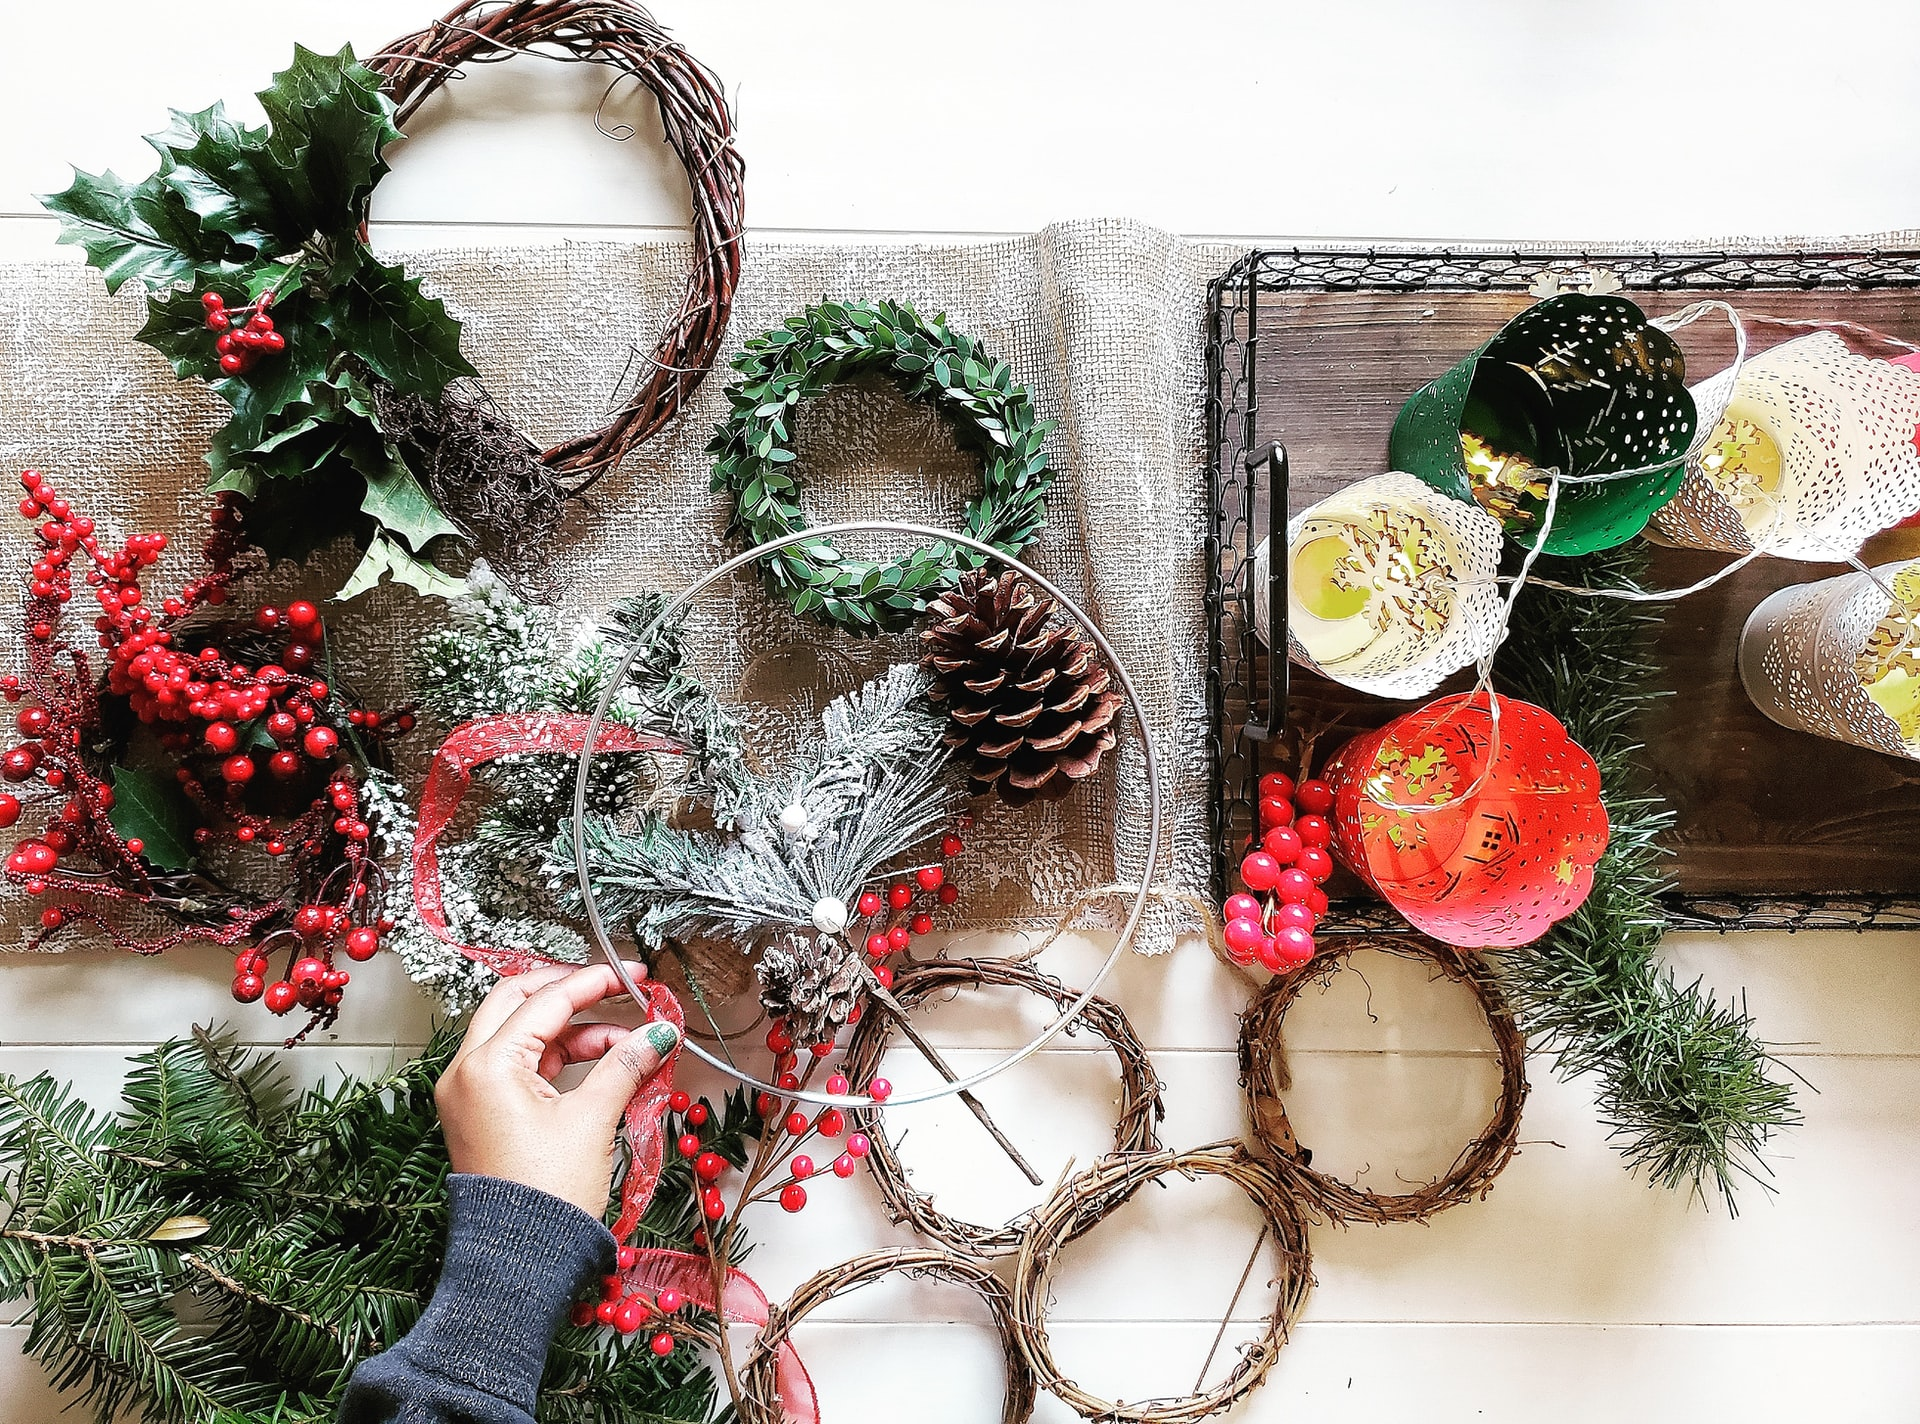 How Can I Decorate My Hallway for Christmas?